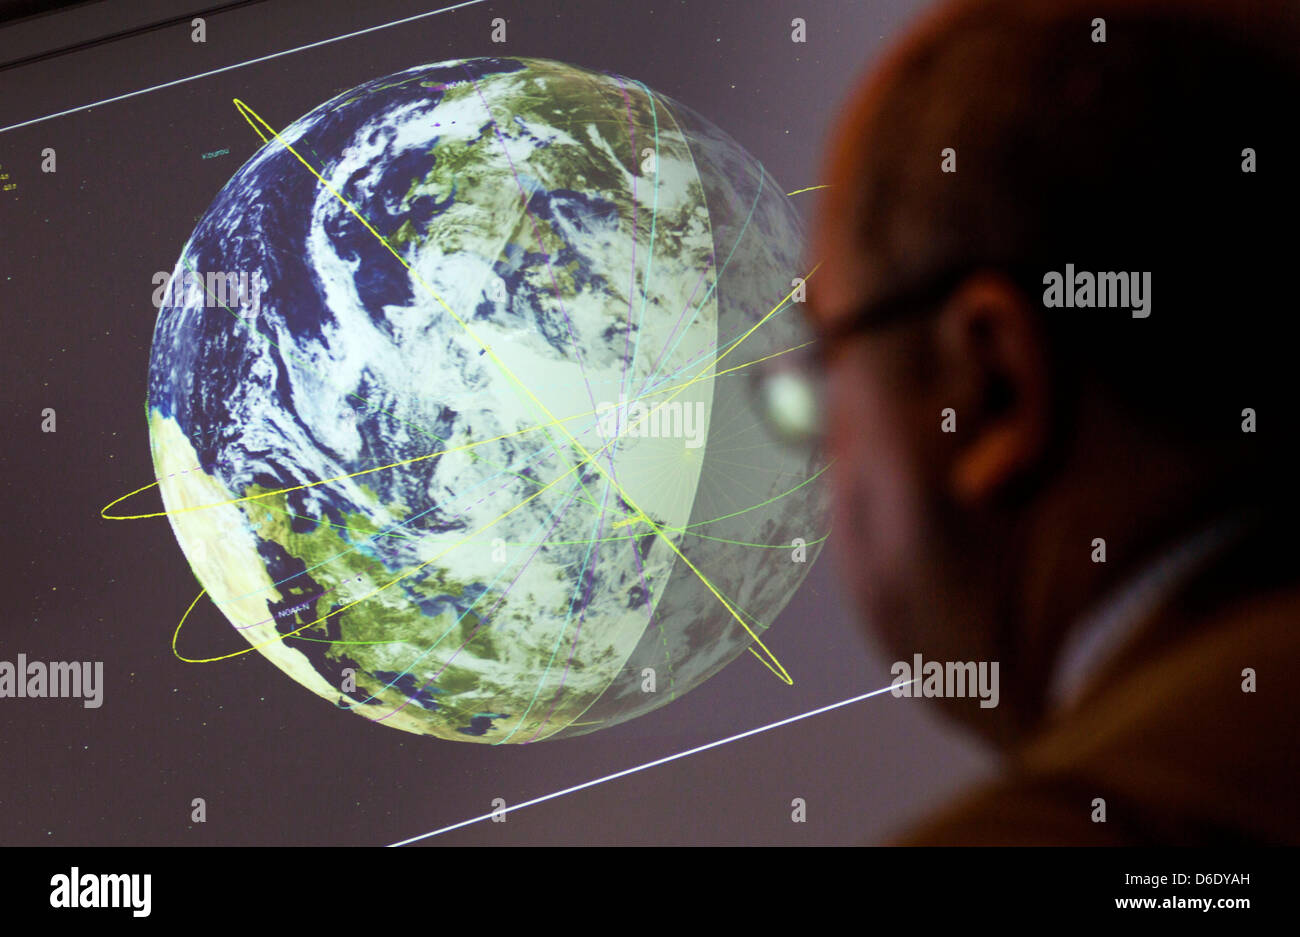 ESA Employees are at work in a control room of the European Space Agency (ESA) in Darmstadt, Germany, 17 September - Stock Image